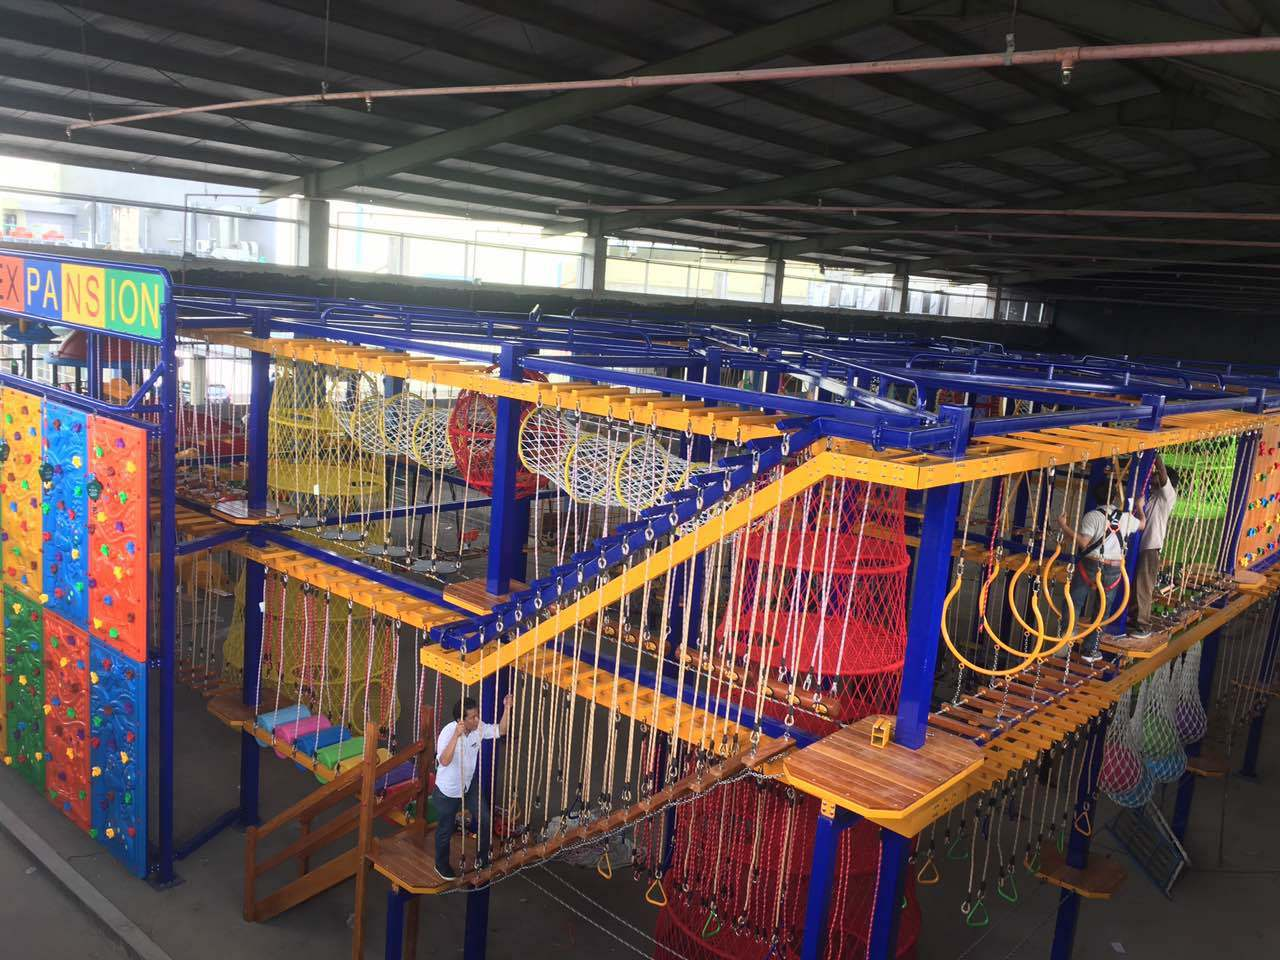 Plastic Maze Outdoor Playground Good Gift for Kids